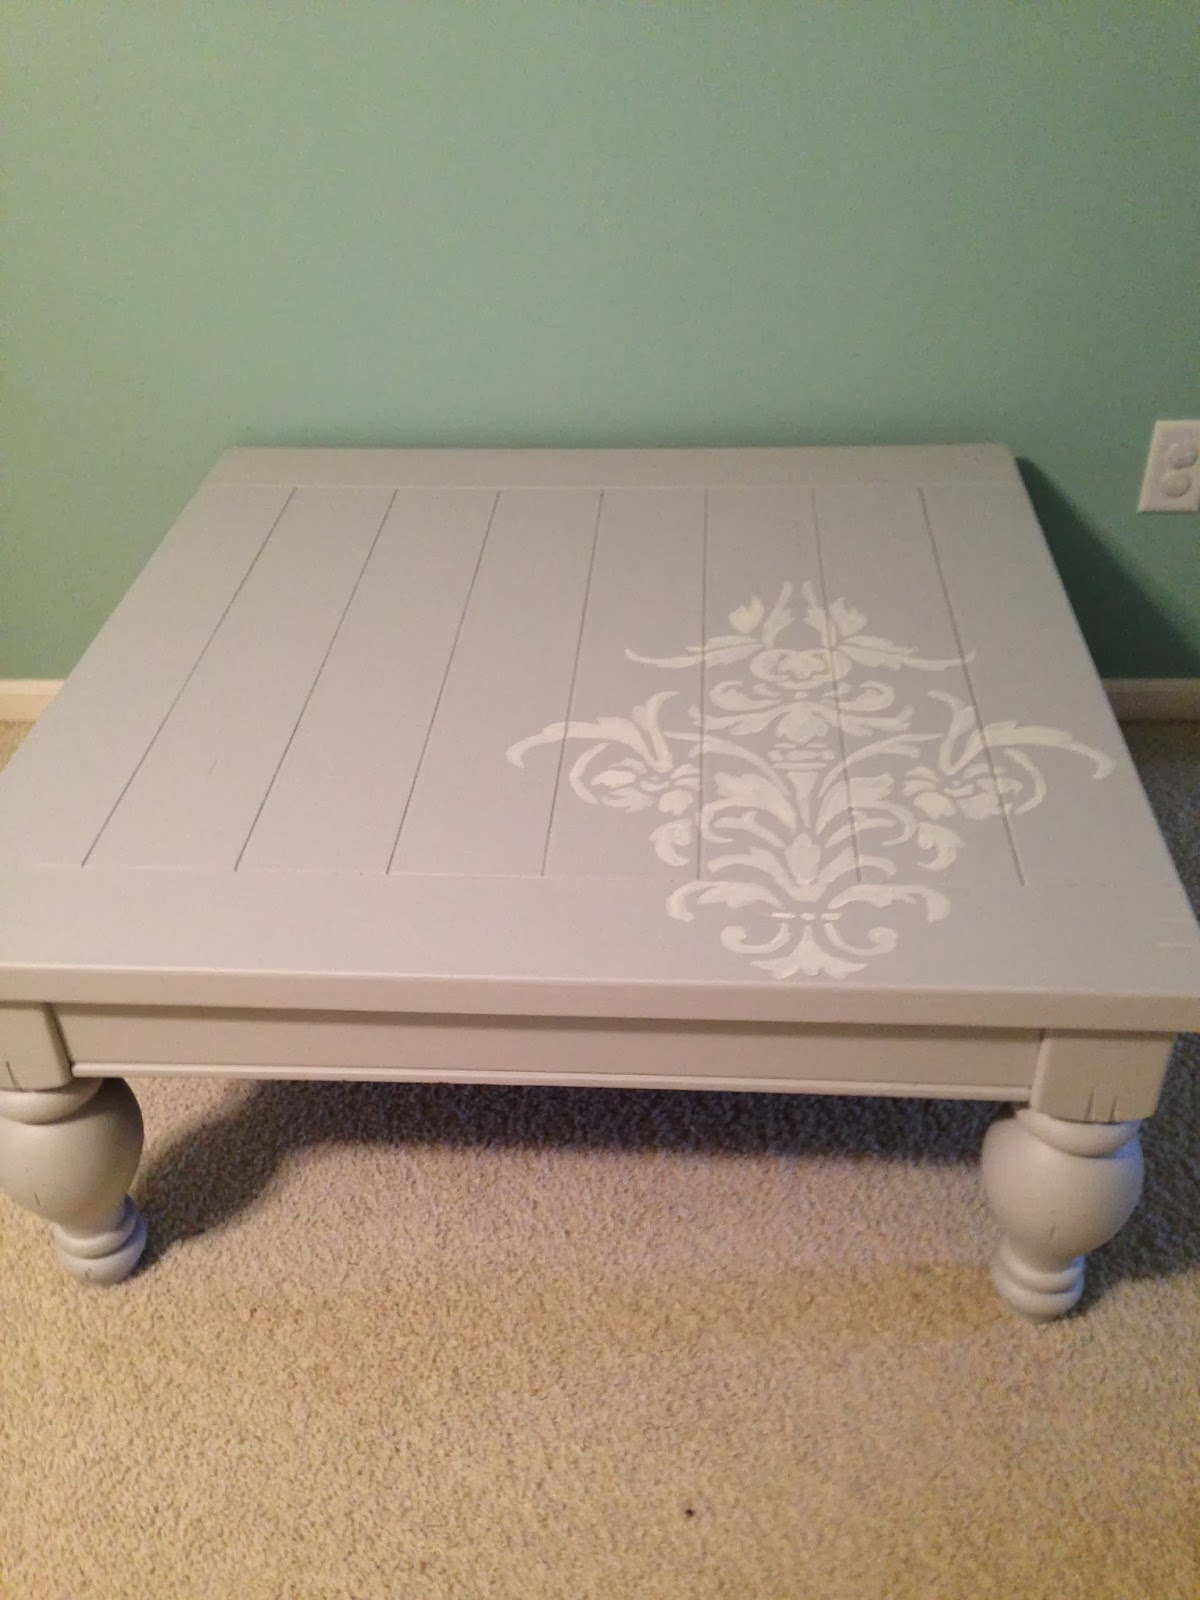 Thrifty Treasures Coffee table makeover no sanding and no wax